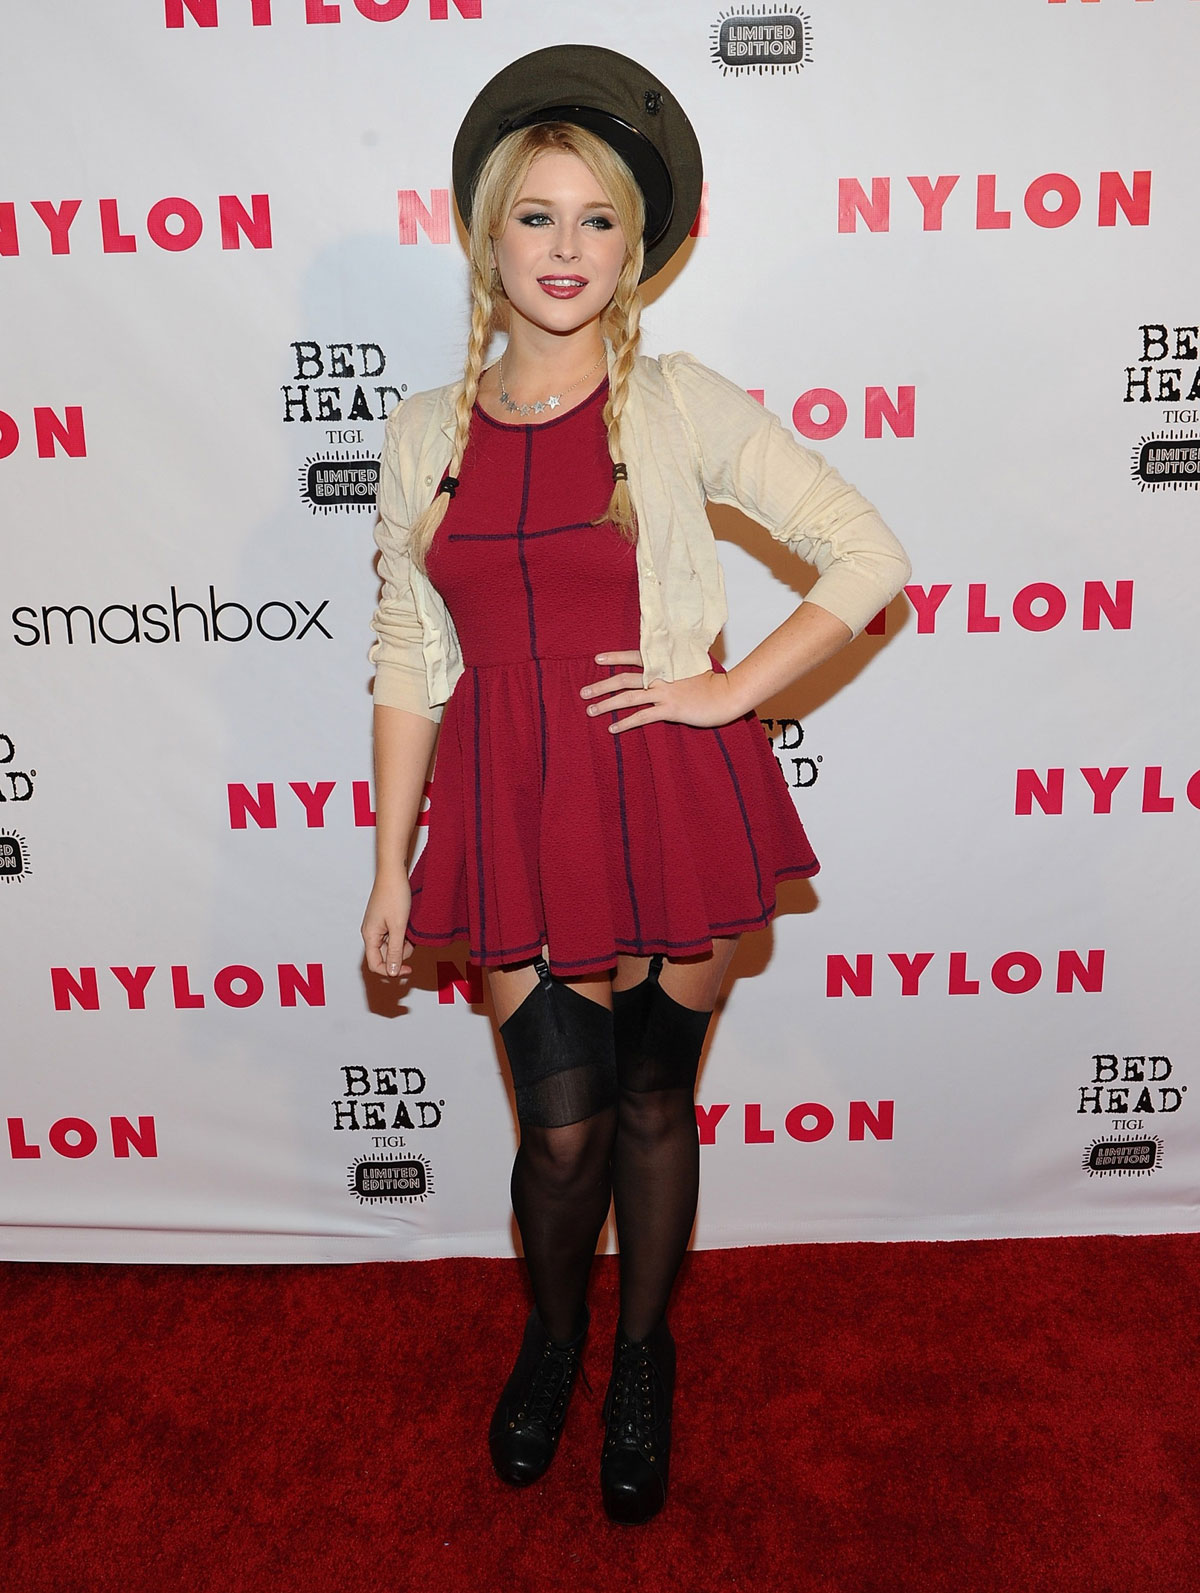 HD Photos of Renee Olstead At Nylon Magazine 13th Anniversary In West Hollywood